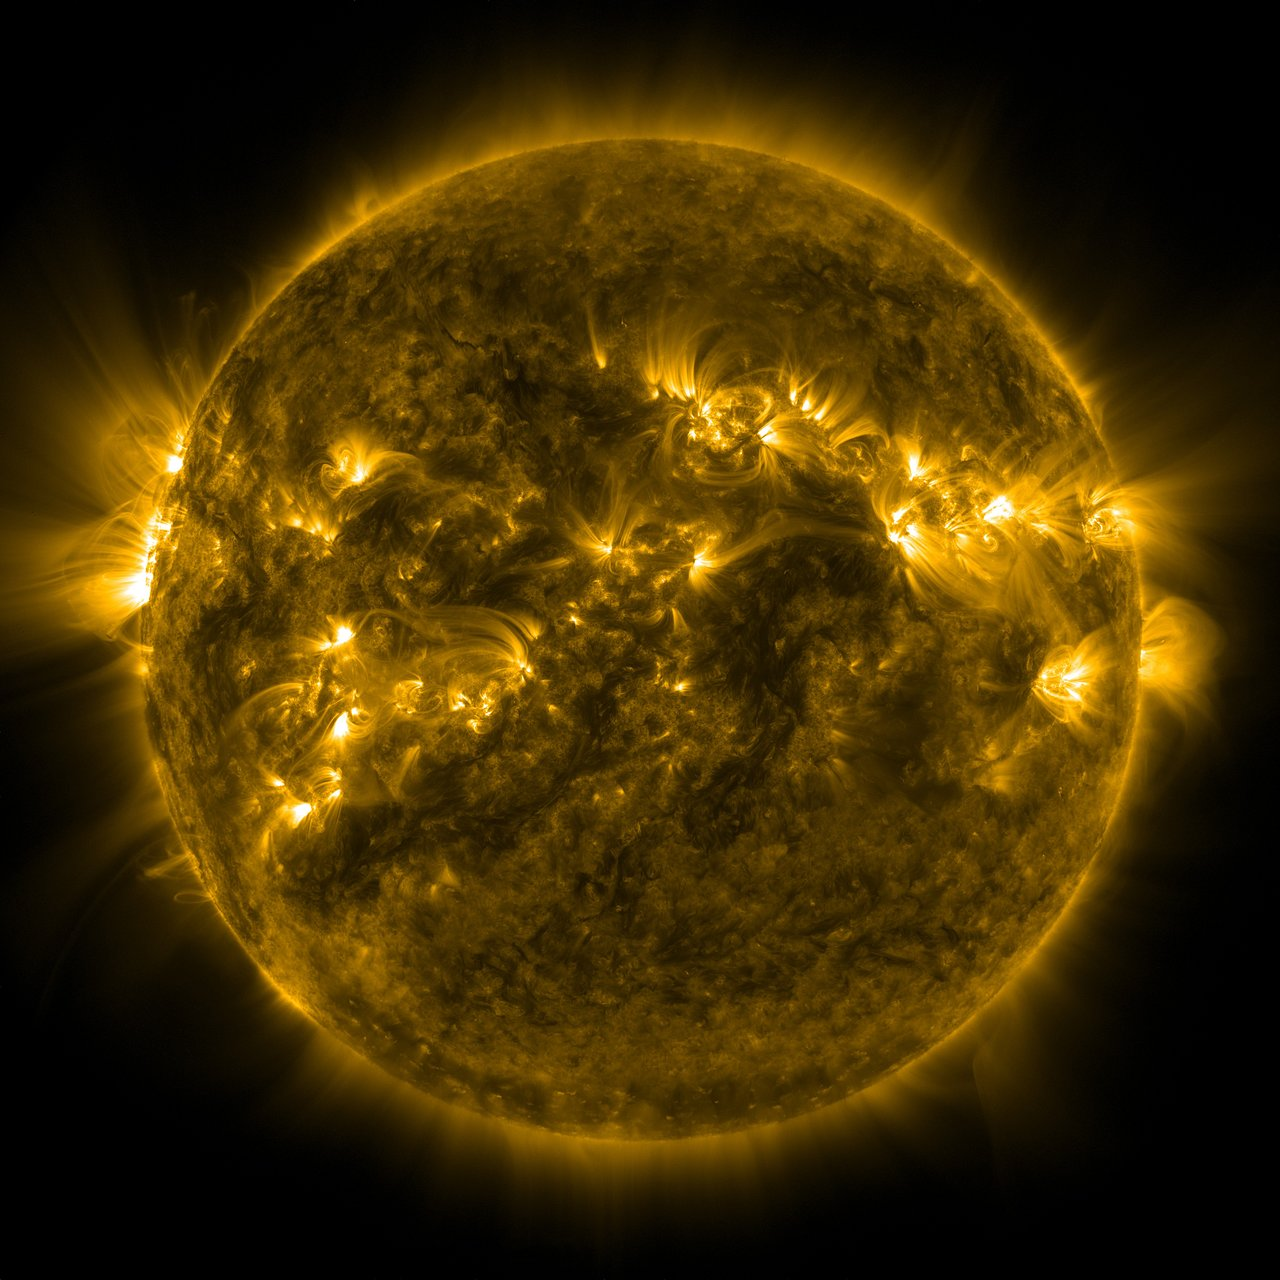 A full disc image of the Sun, part of science week talk by astronomy speaker and science presenter Colin Stuart